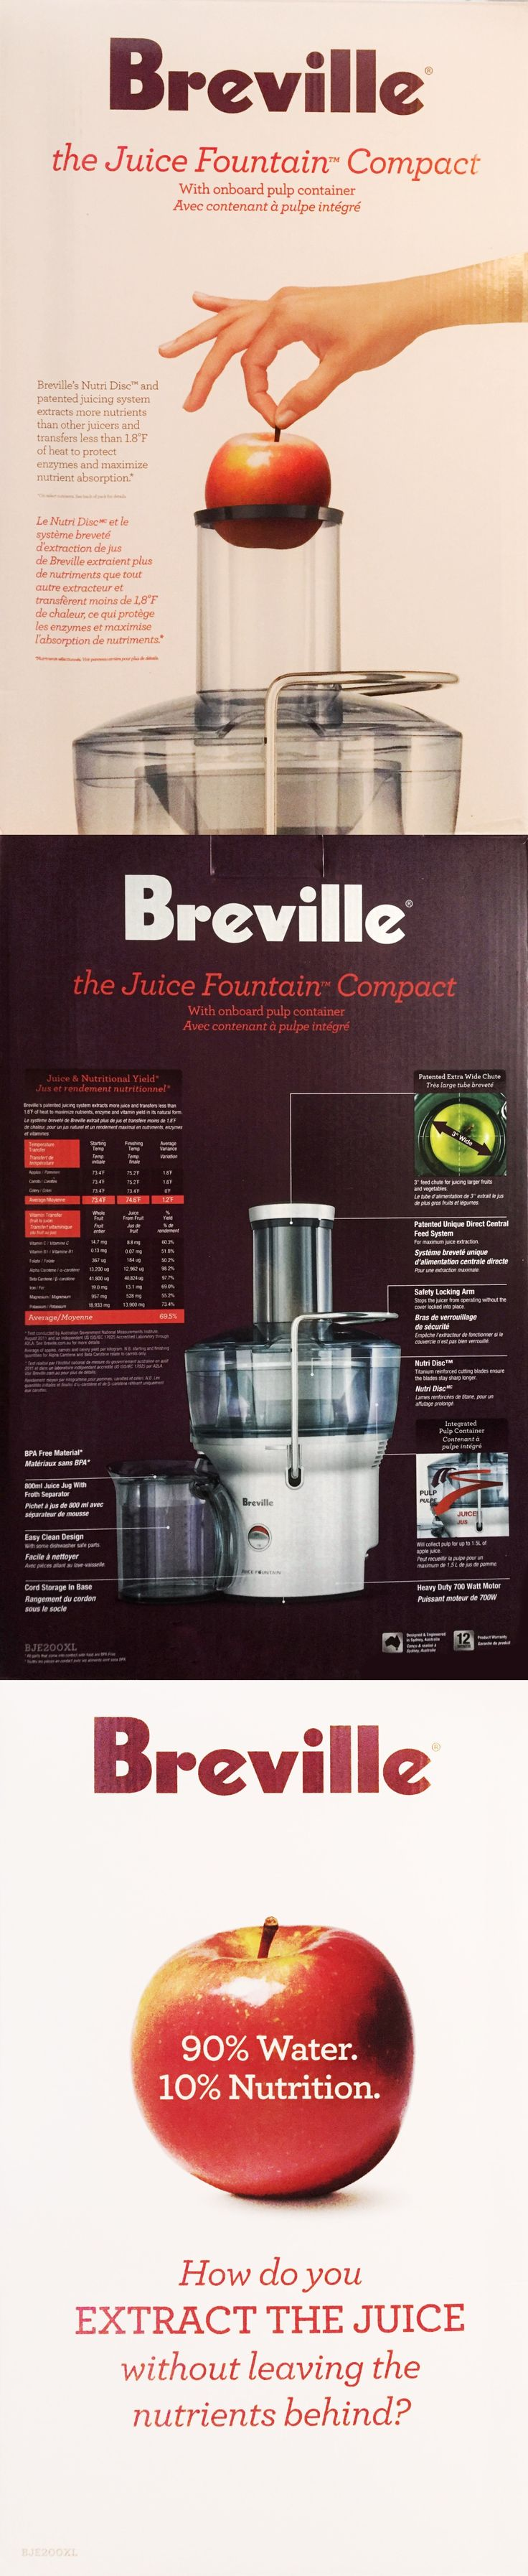 I recently purchased a Breville Juice Fountain Compact which comes recommended by Joe Cross of Fat, Sick and Nearly Dead fame; as well as by Daphne Oz, co-host of ABC's The Chew and daughter of Dr. Oz, in her book Relish—an adventure in food, style and everyday fun. The Juice Fountain is remarkably powerful, easy to clean compared to other machines and is inexpensive to buy.